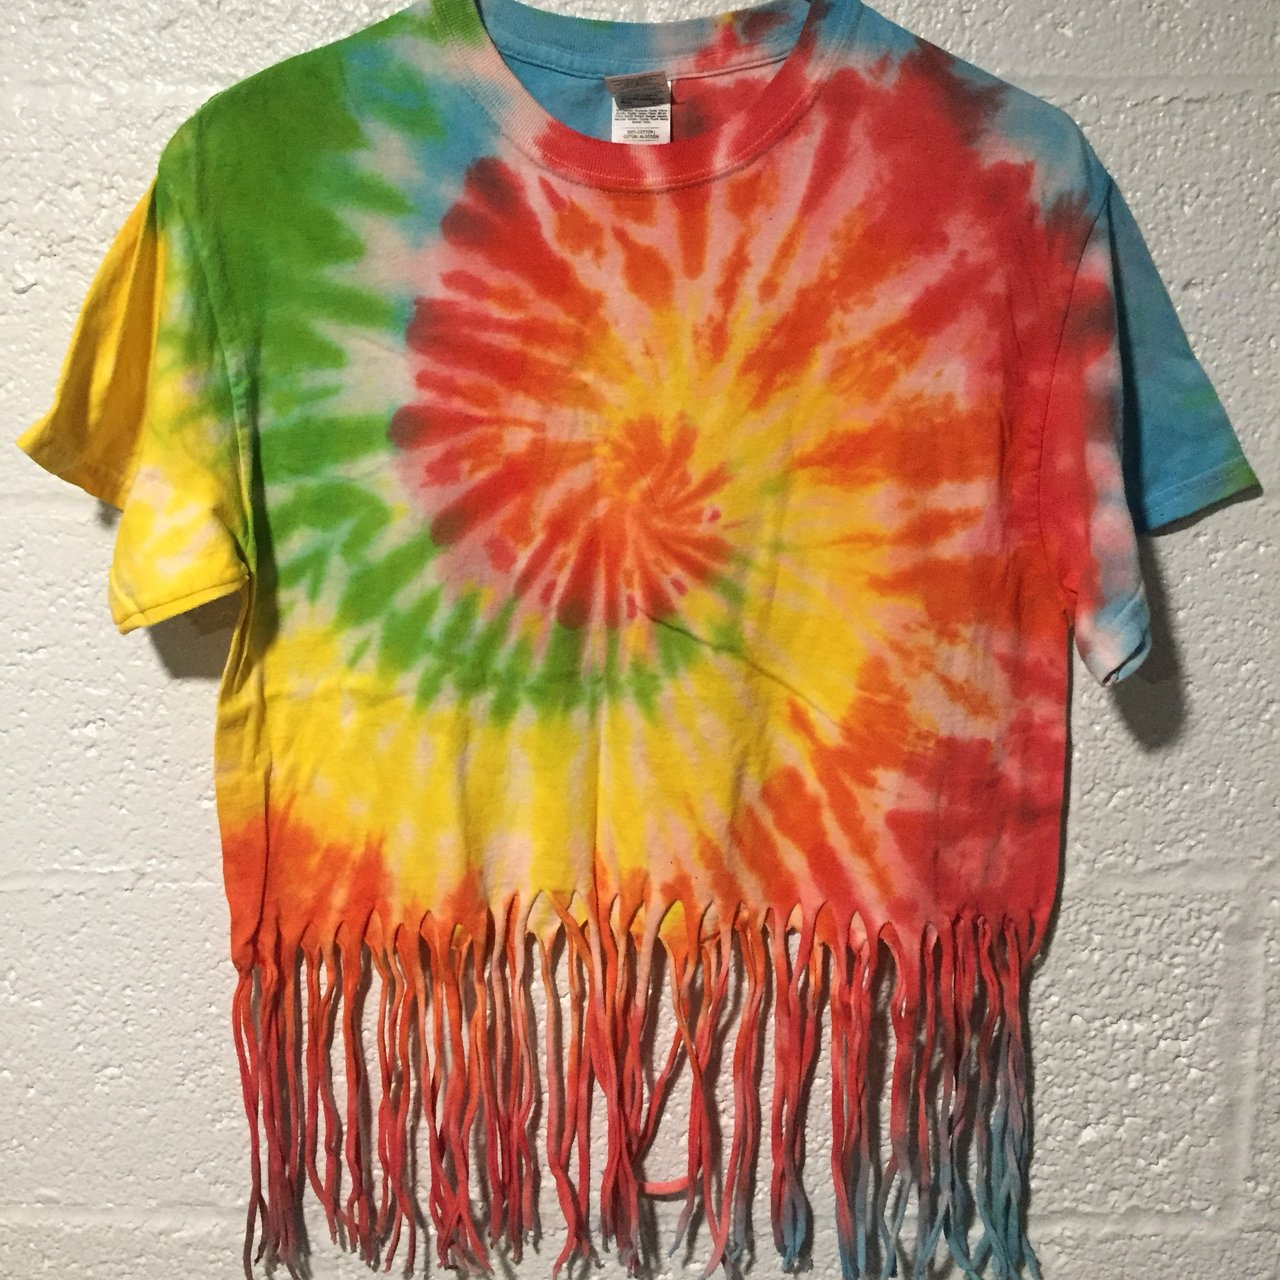 77eacccffaa4  zimothy666. 6 months ago. United States. Rainbow tie dye fringe shirt.